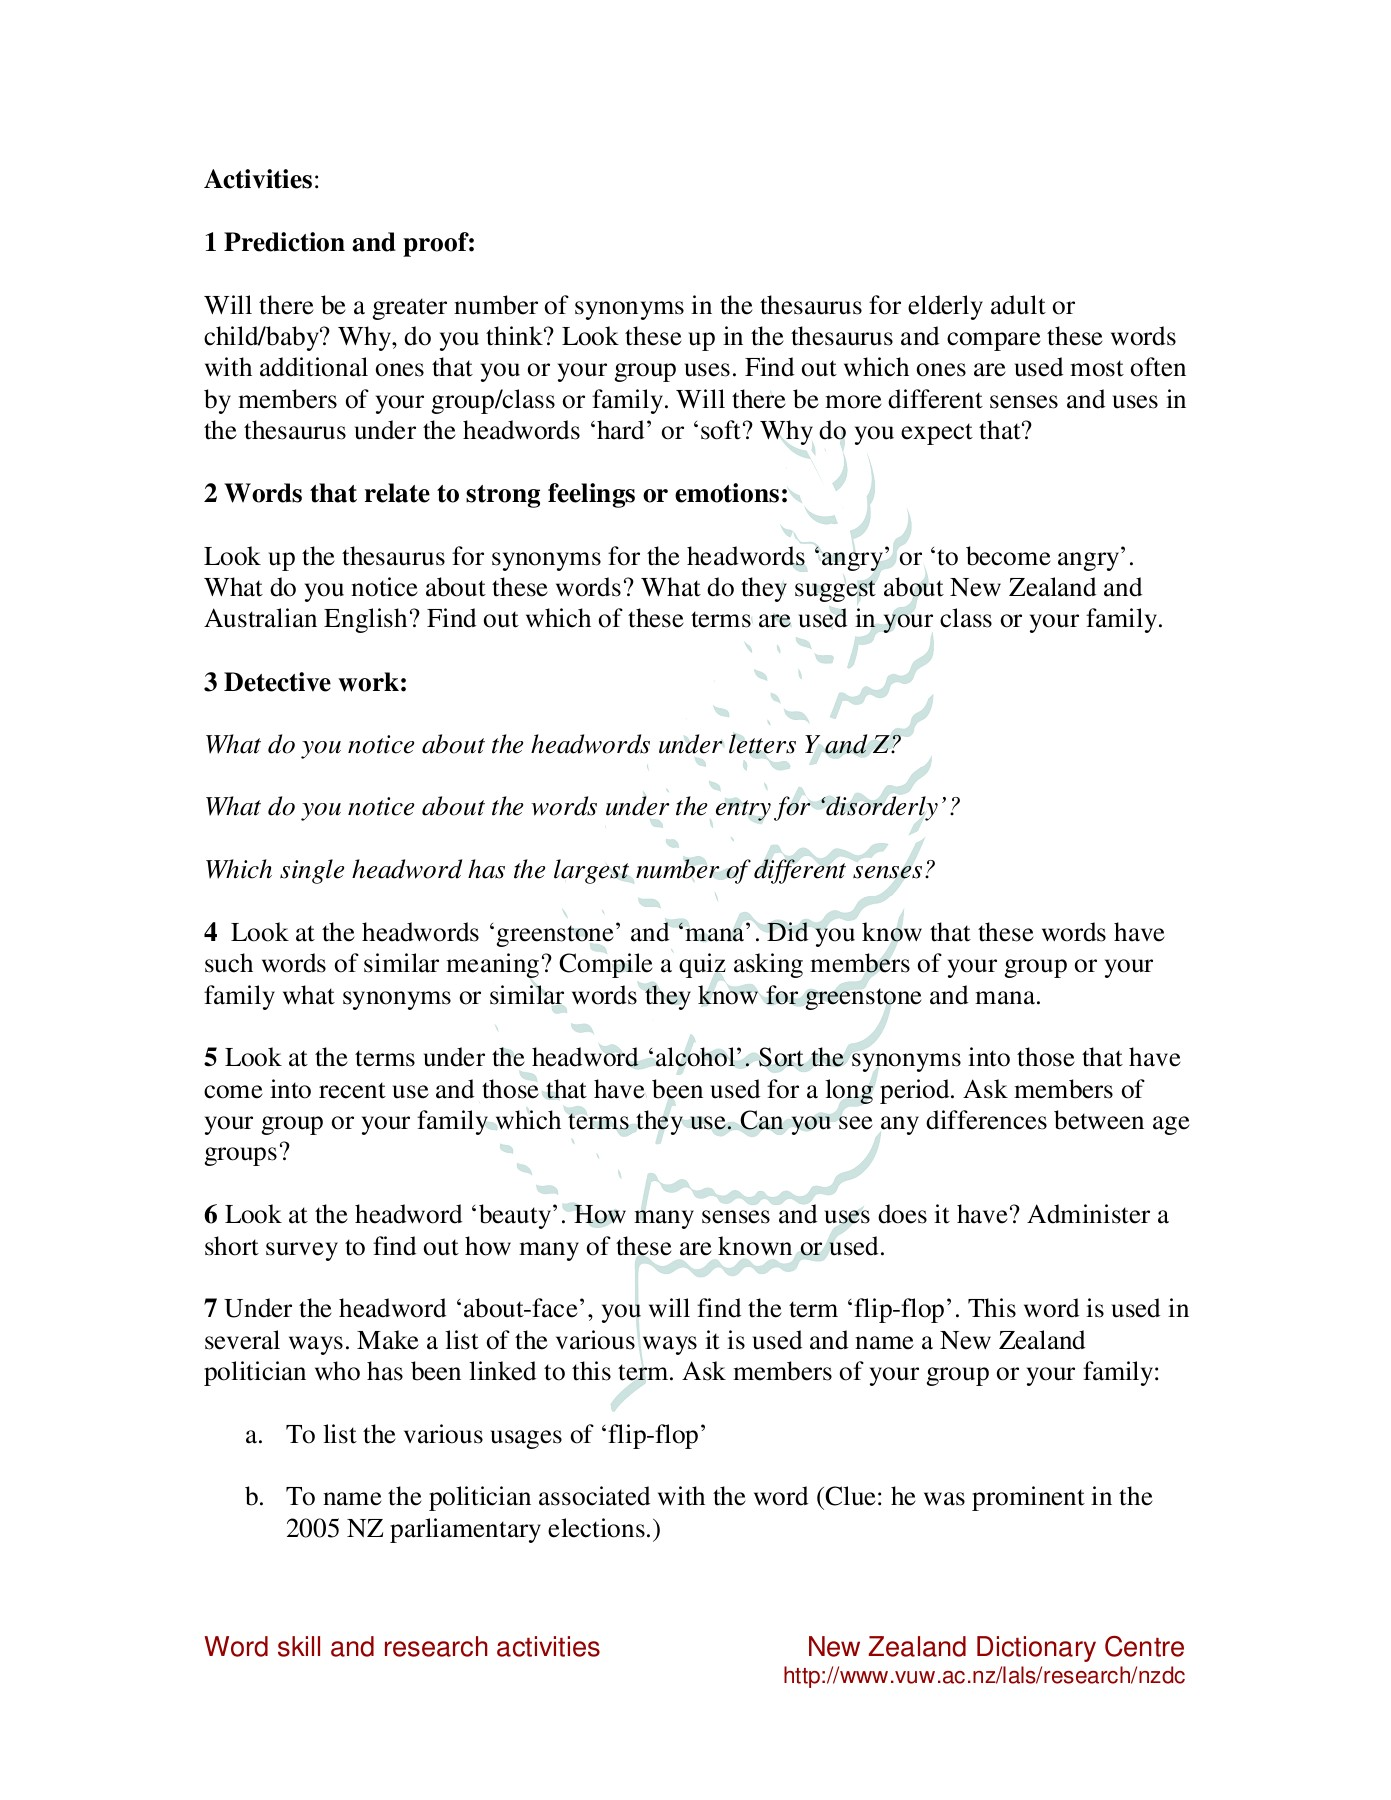 A15 Word skill and research activities Pages 1 - 6 - Text